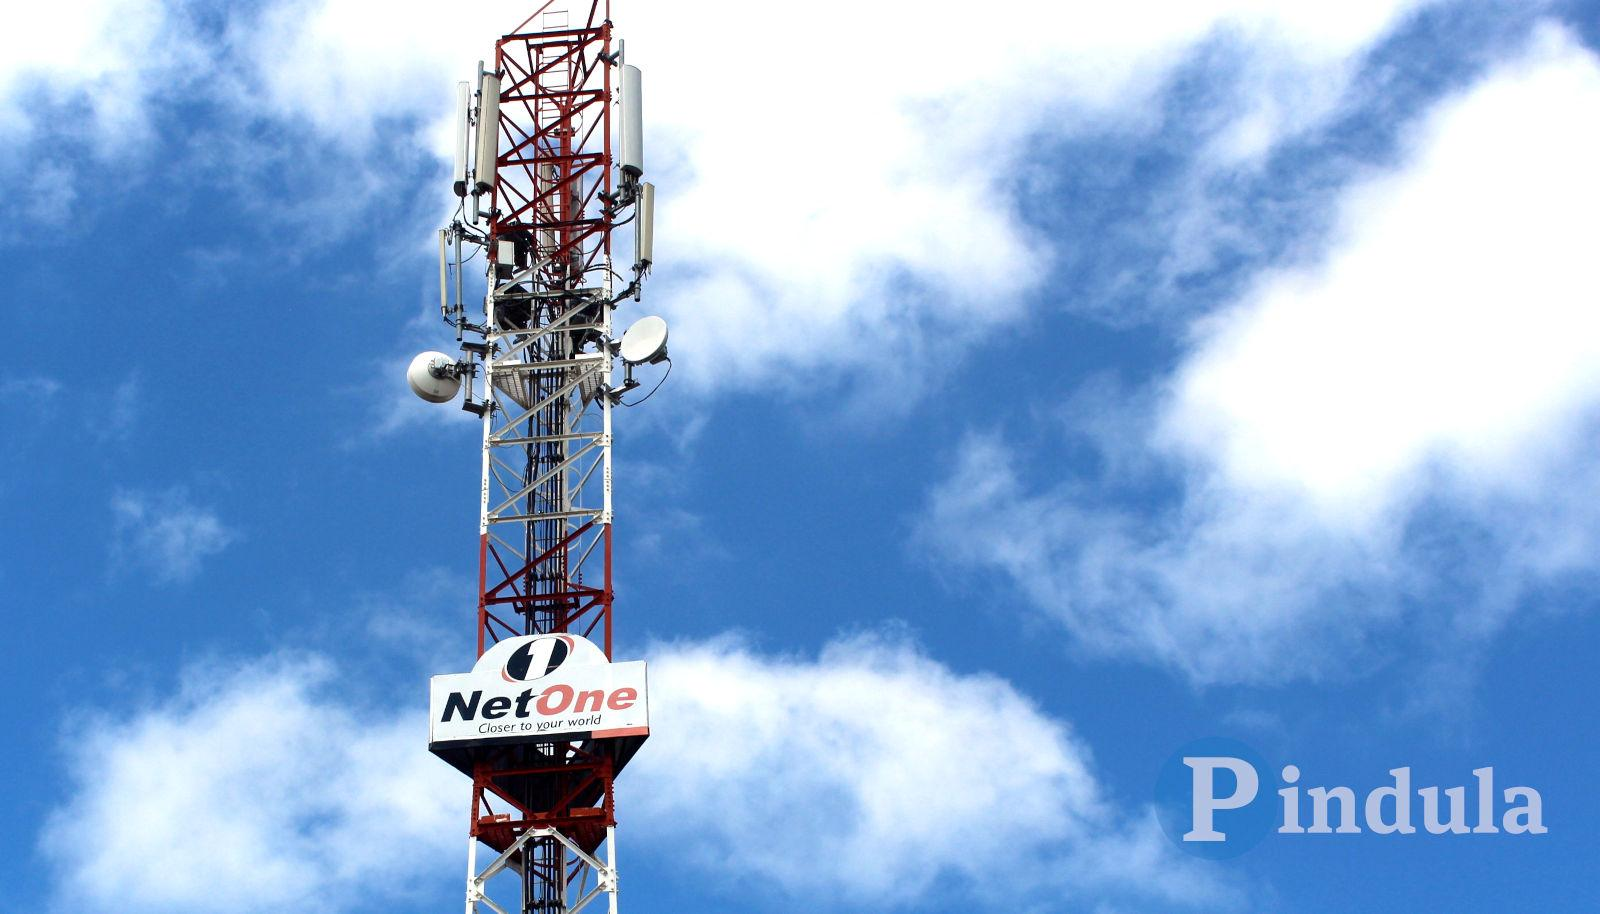 NetOne To Deploy More Than 250 Base Stations, Including 5G